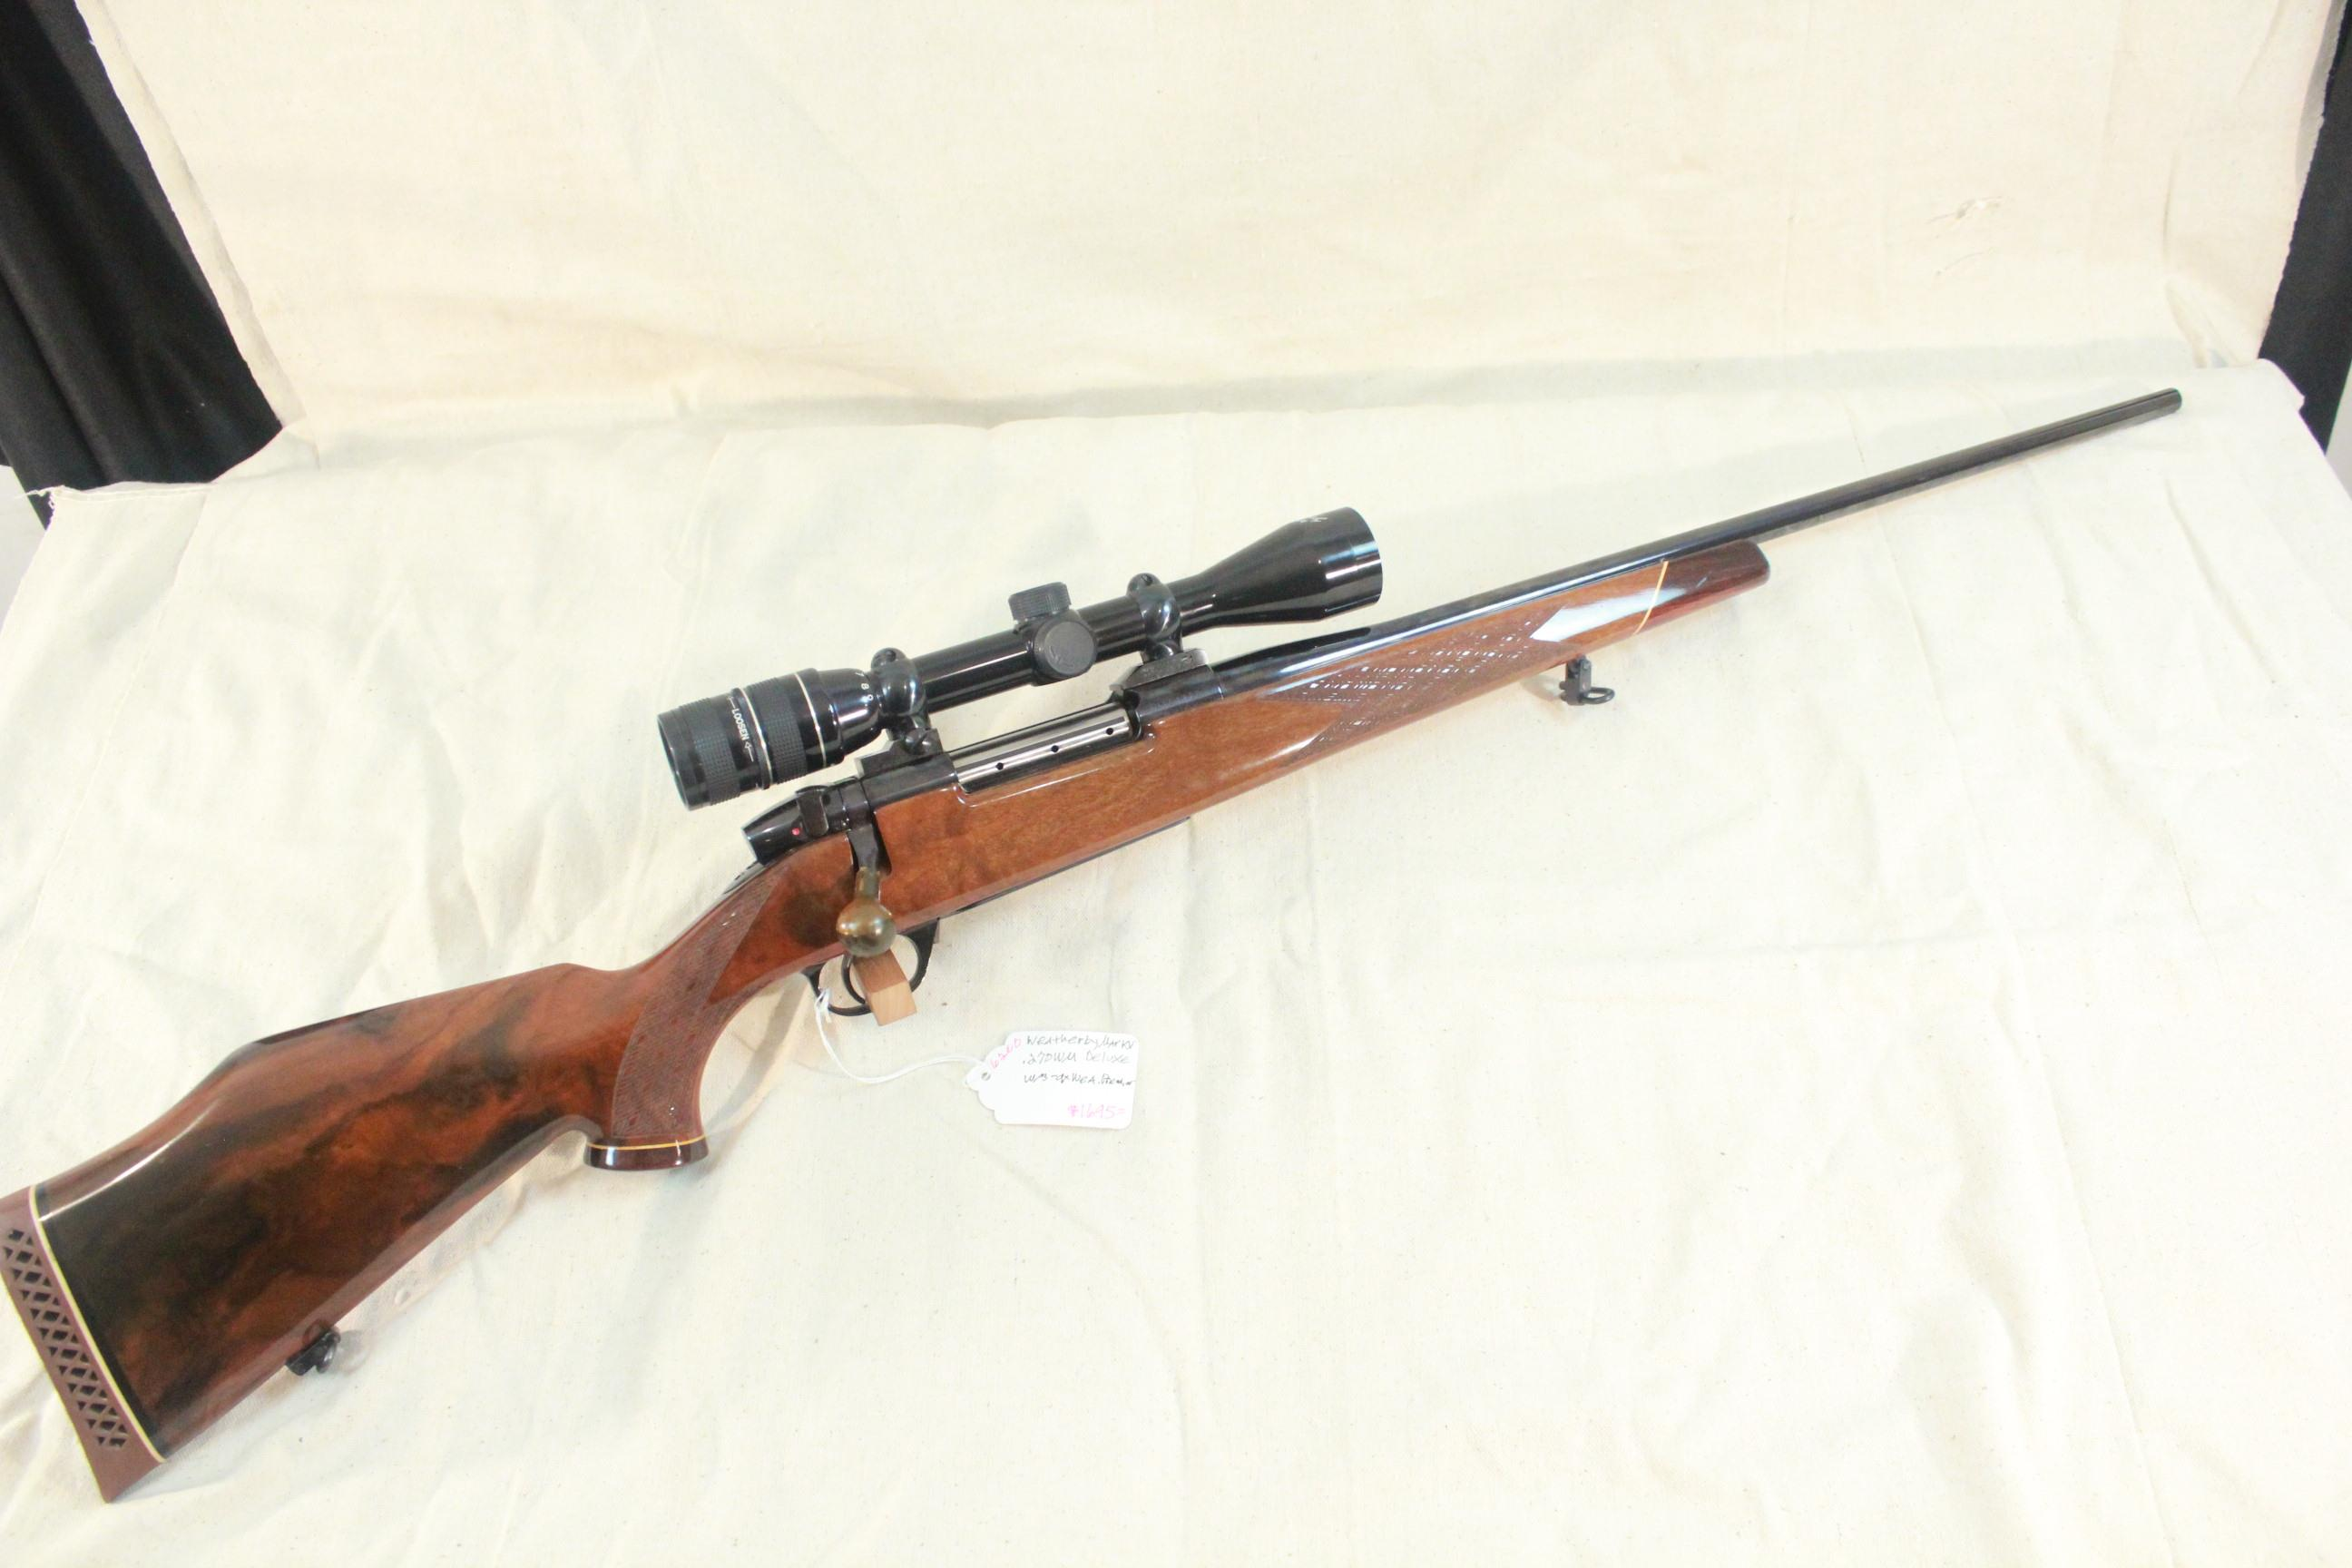 Weatherby Mark V Deluxe in .270 WM w/3-9x Weatherby Premier scope  Guns > Rifles > Weatherby Rifles > Sporting